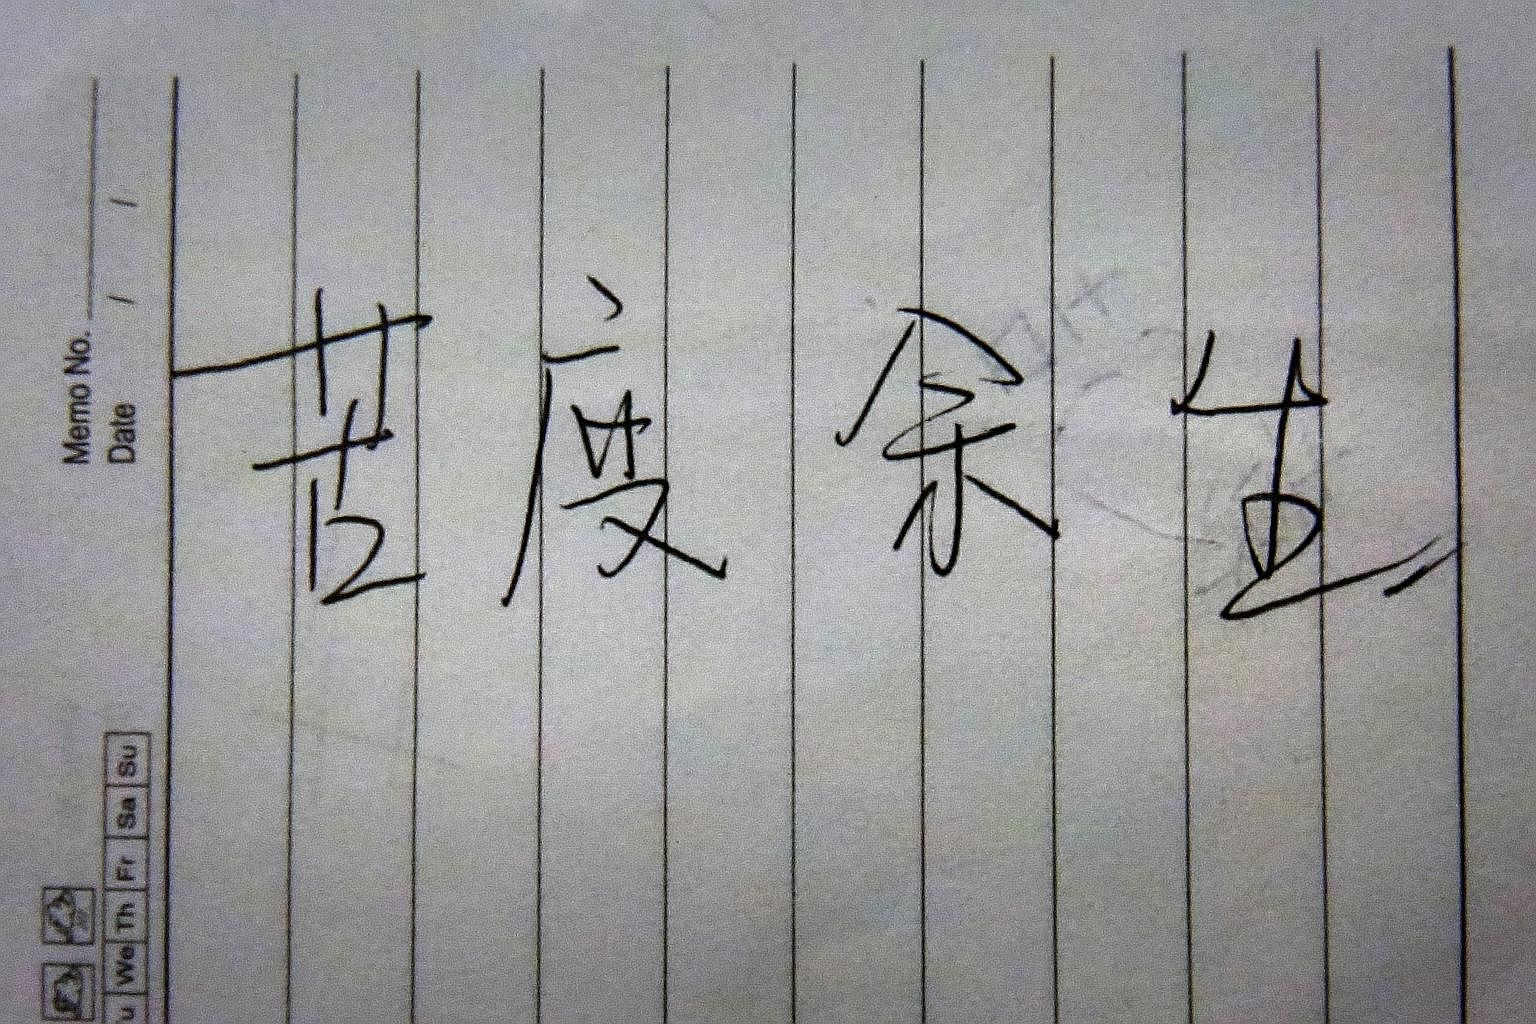 The phrase 'ku du yu sheng' that Mr Meng's brother Fanjin wrote when asked how he felt about his brother's disability. It